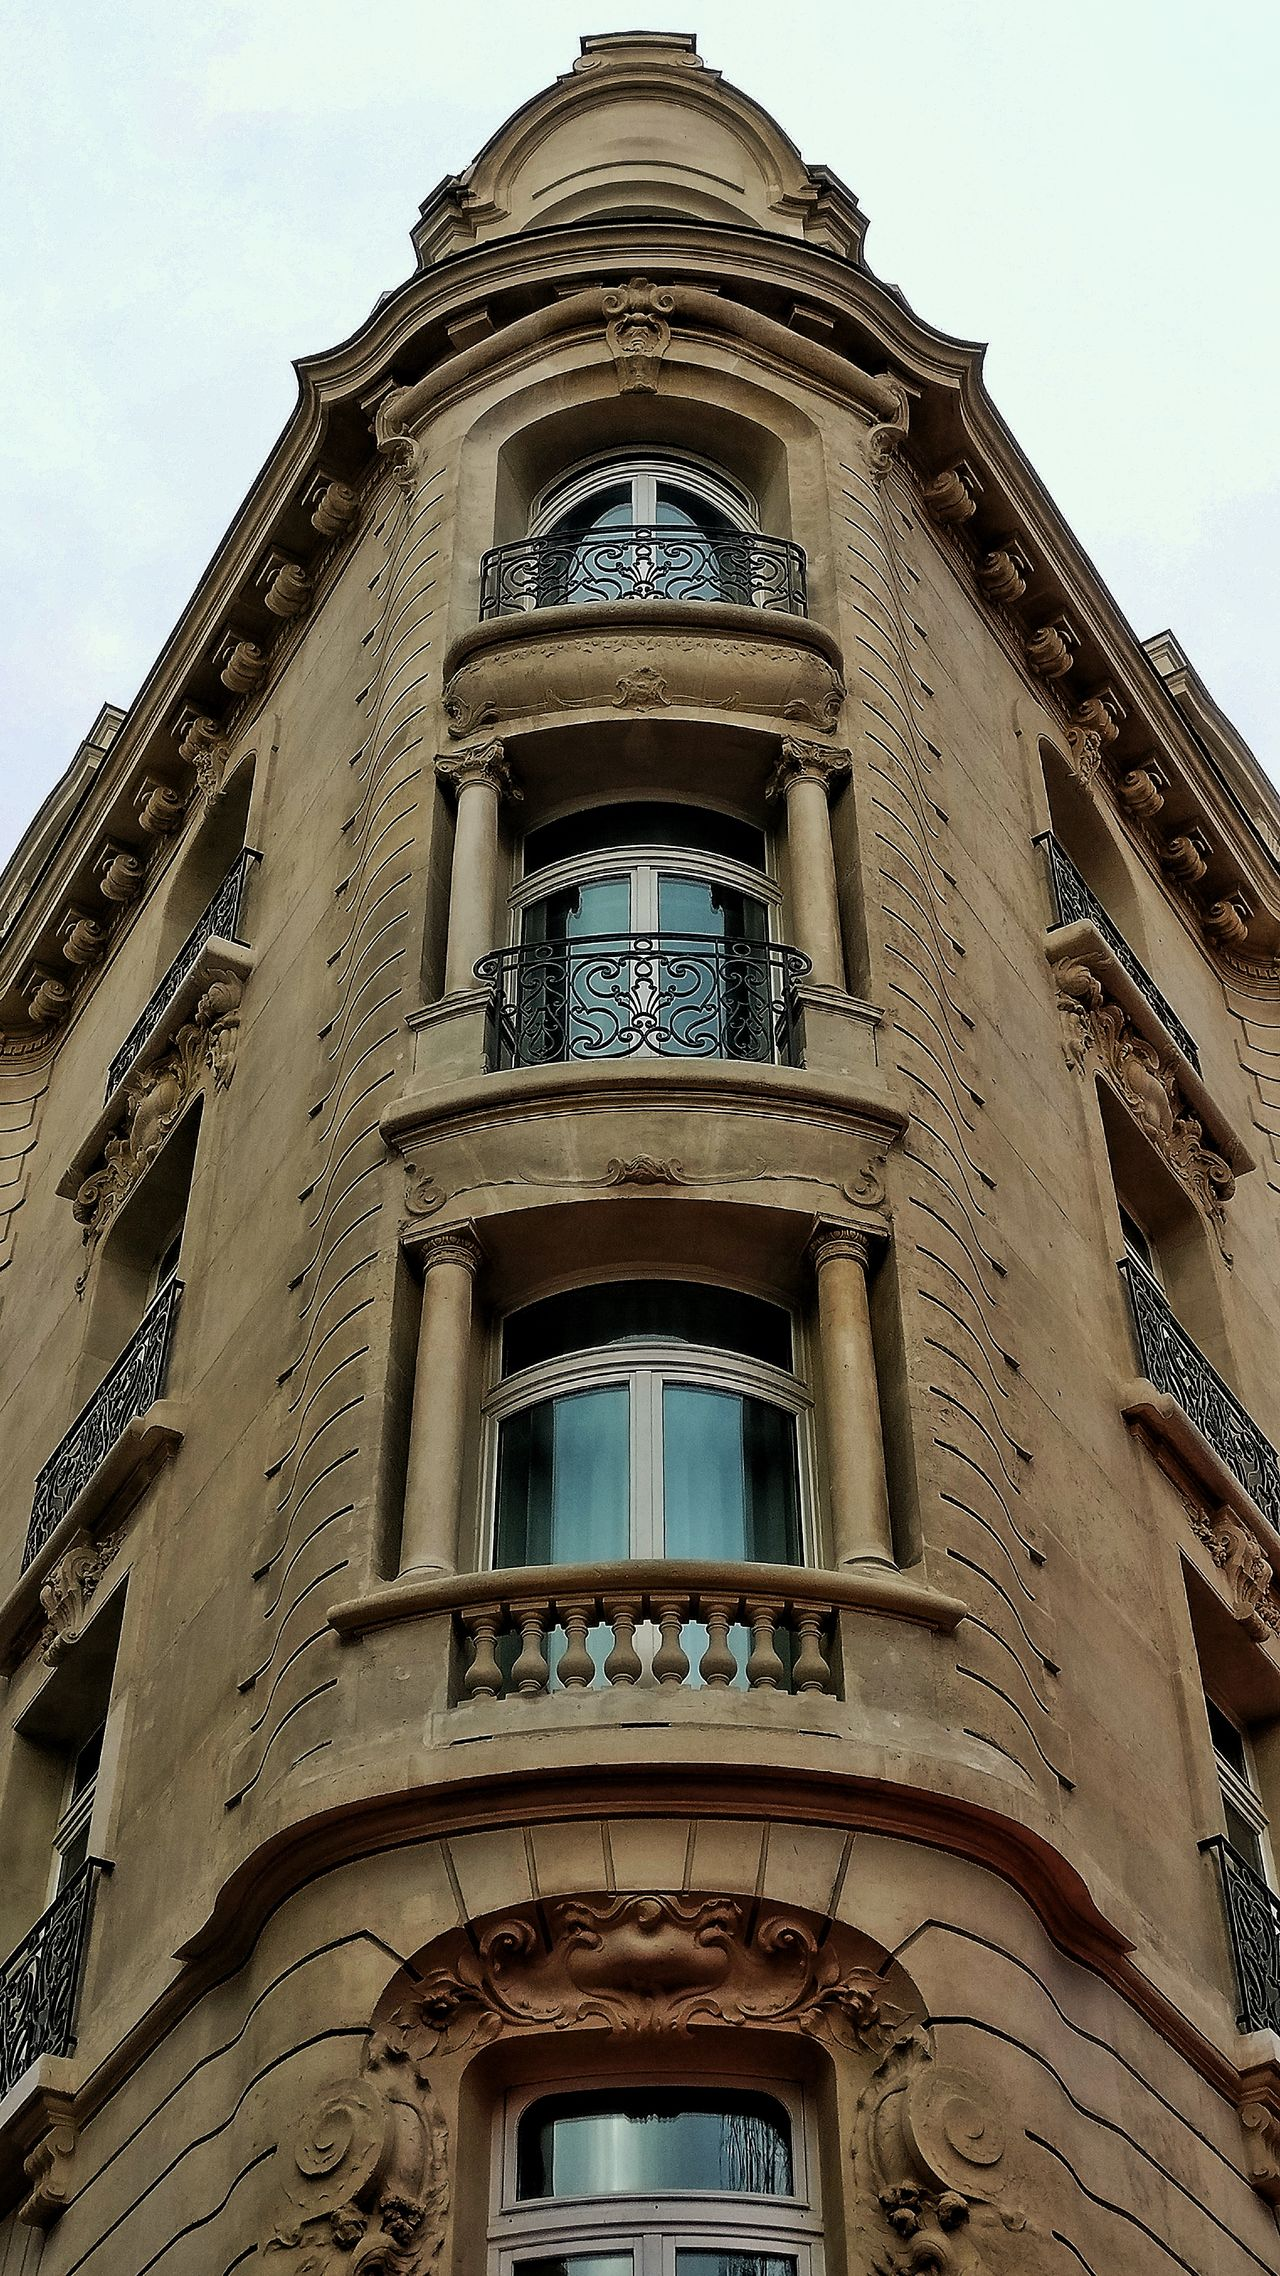 Low Angle View Architecture Built Structure Building Exterior No People Sky Outdoors Day Snapseed Oneplus3 OneplusShot France 🇫🇷 PhonePhotography AndroidPhotography Plus Belle Avenue Du Monde Champselysées